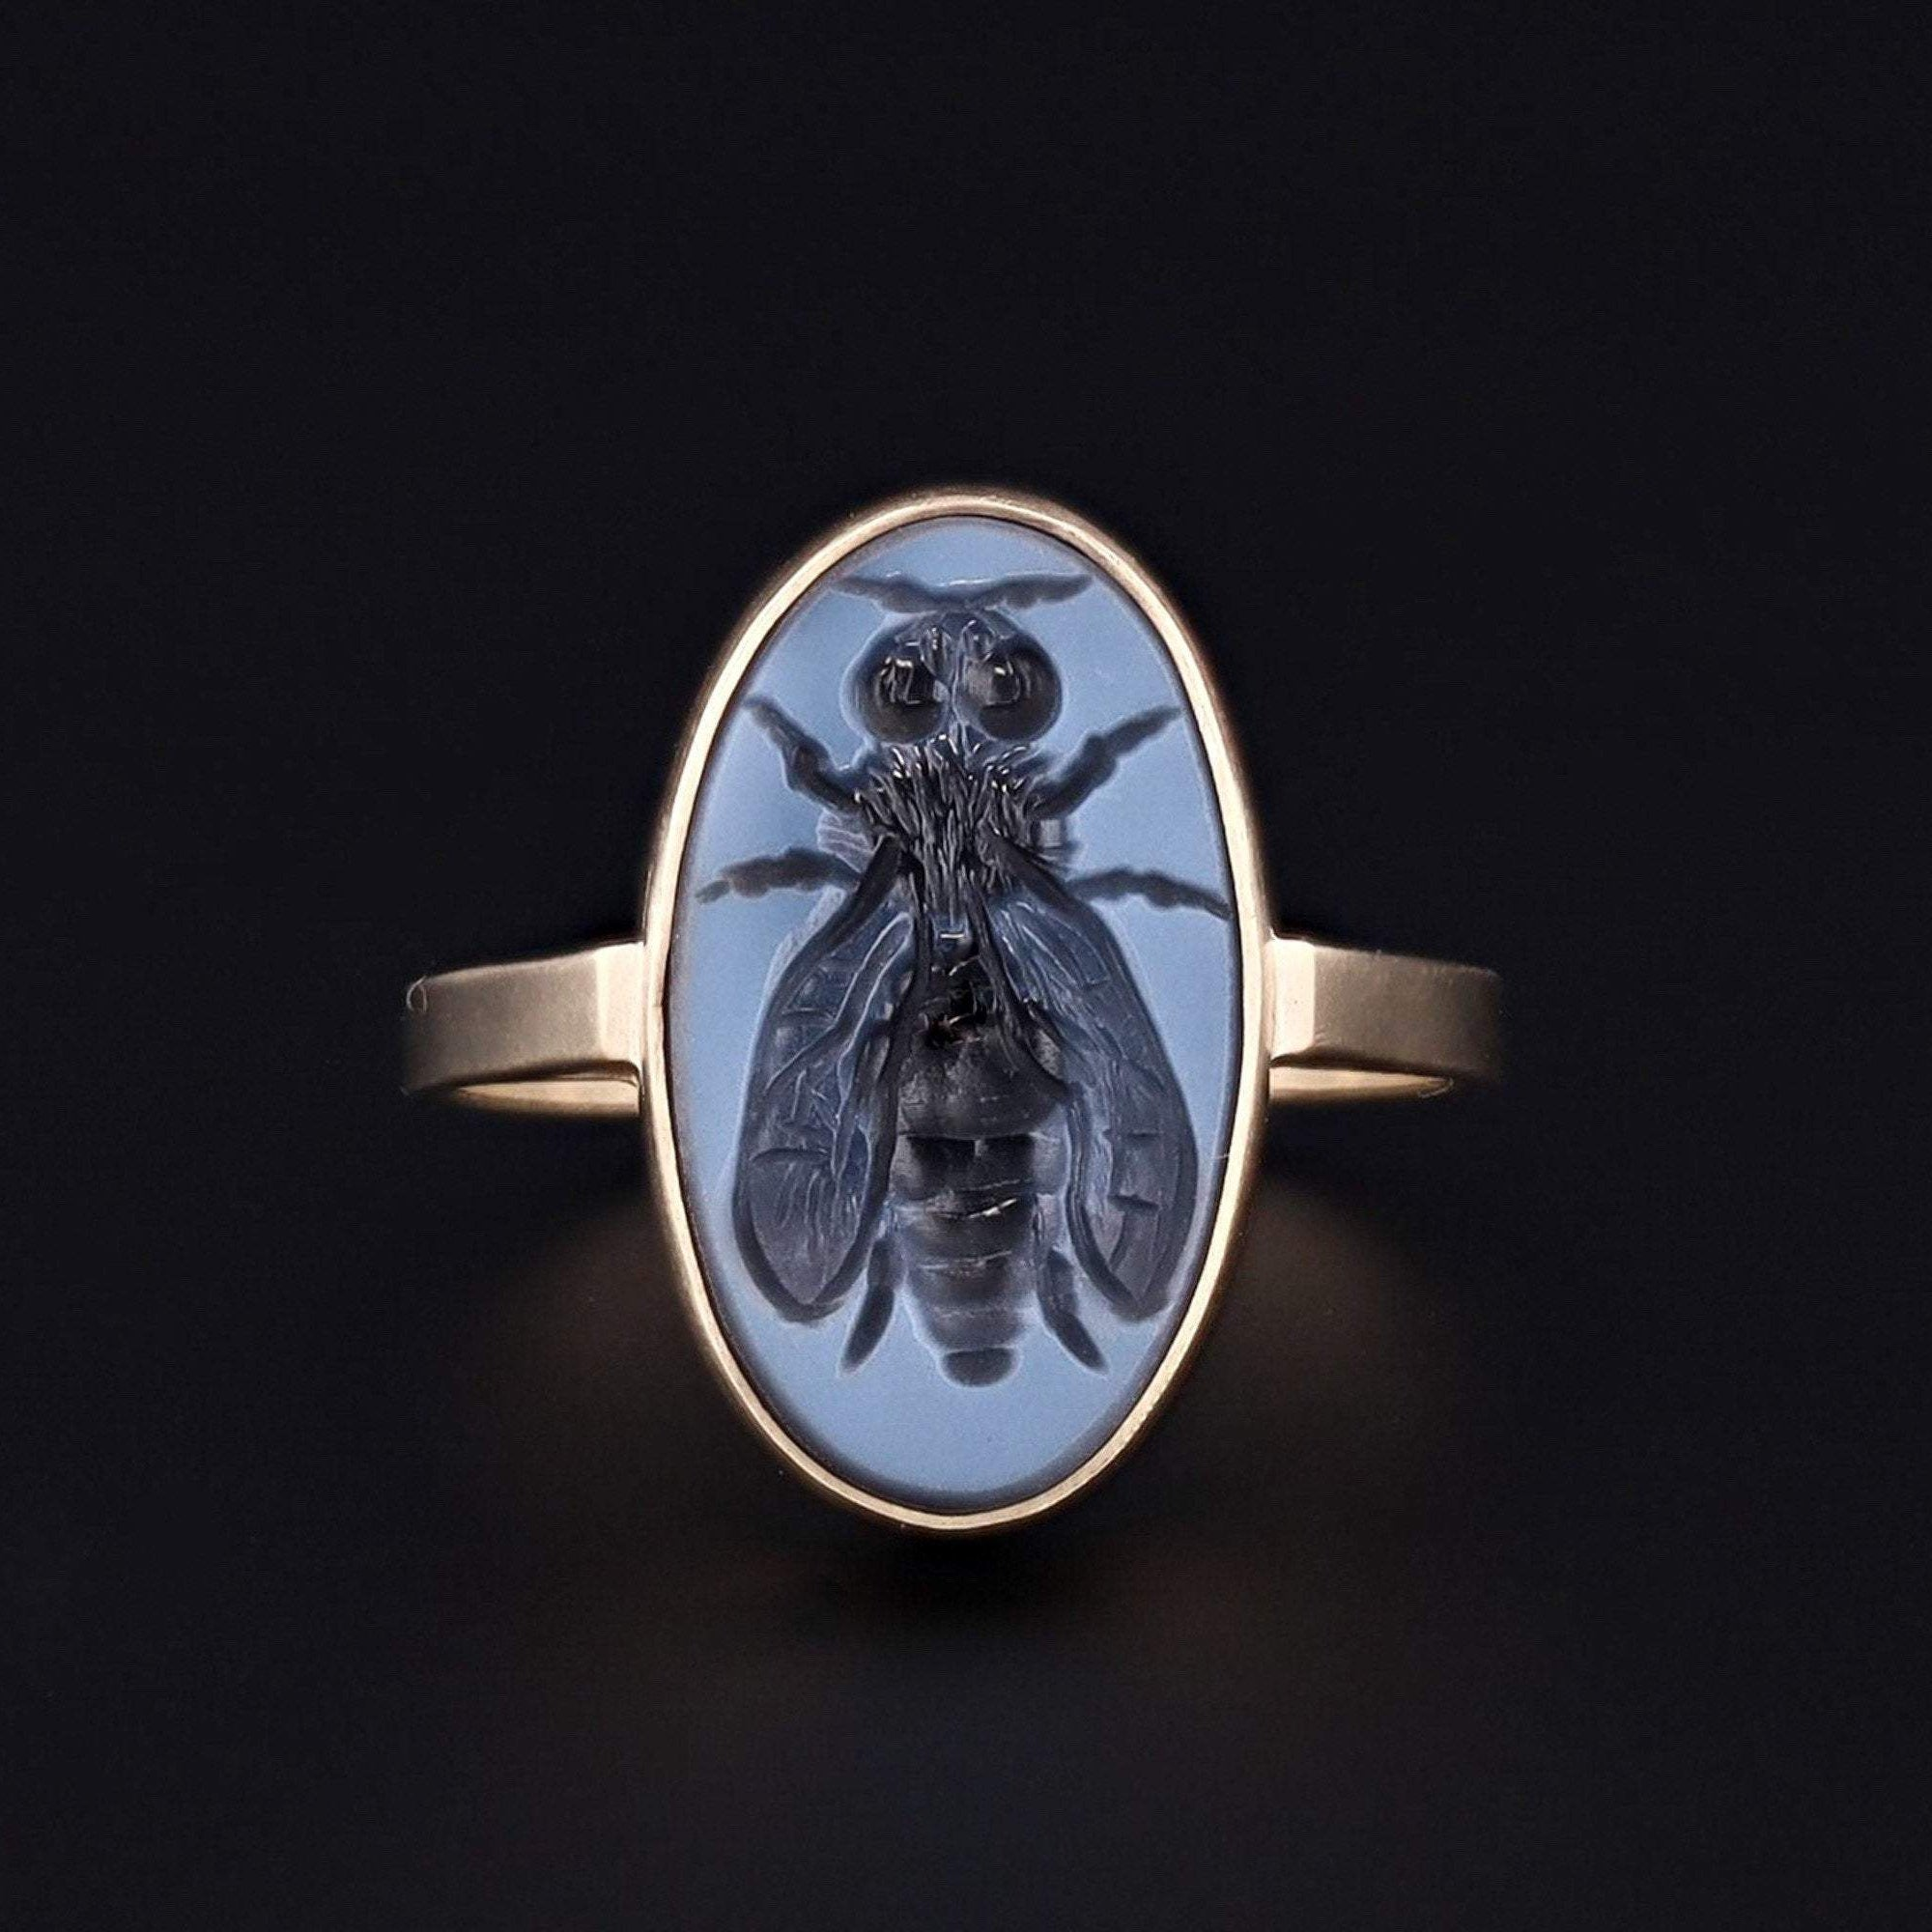 Bee Ring | Intaglio Ring | Black and White Agate Intaglio Ring | 14k Gold Ring